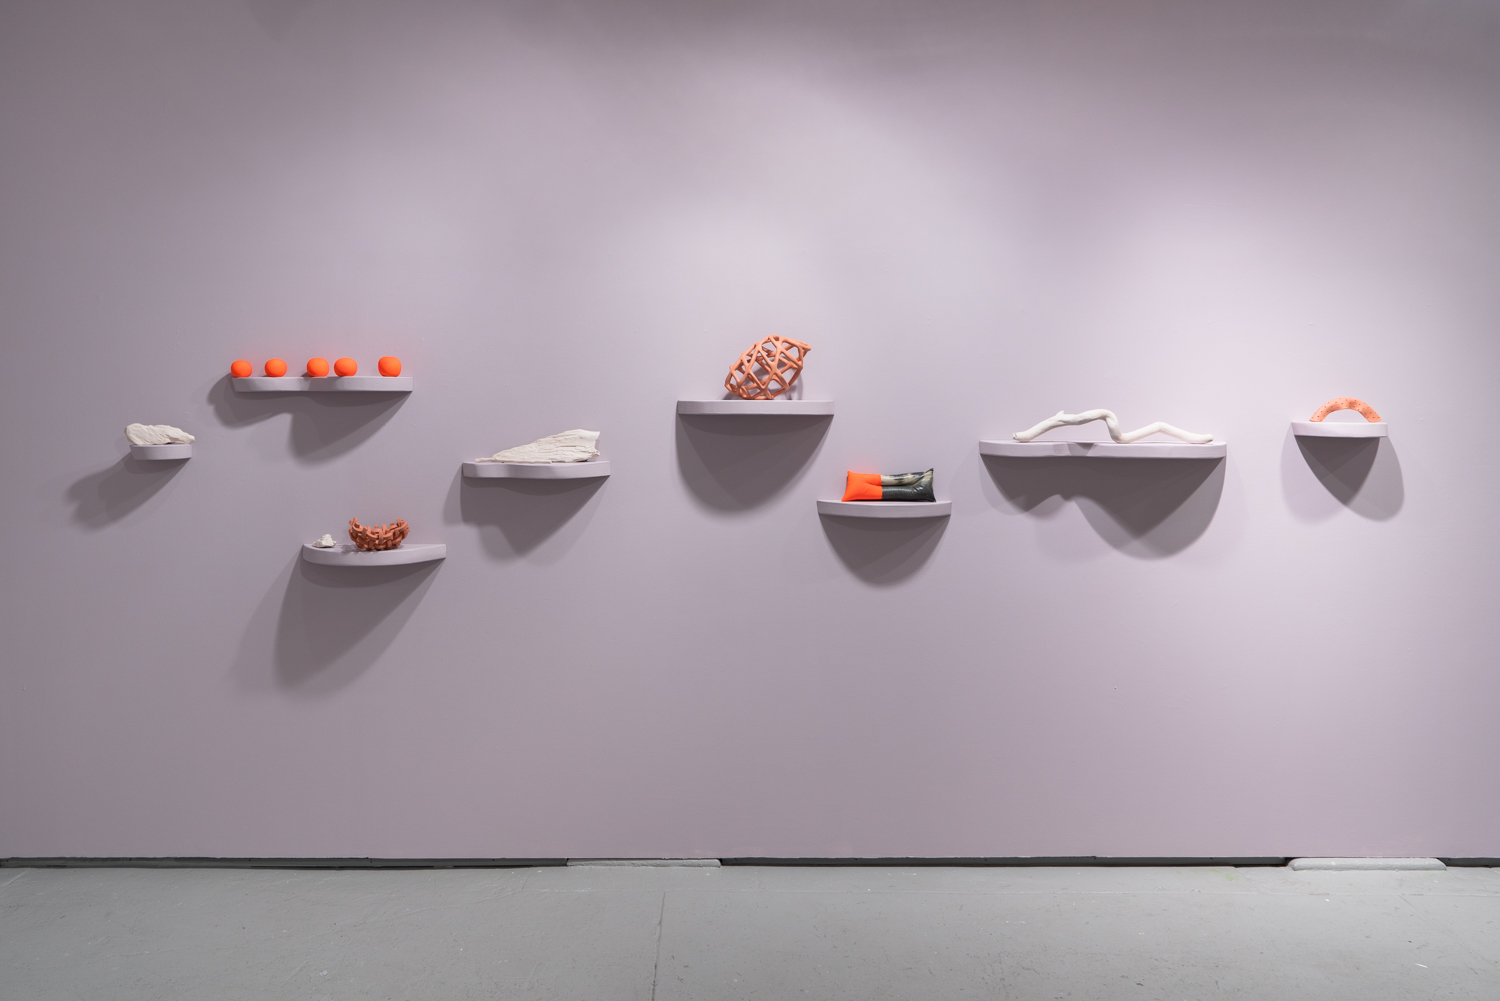 Meghan Grubb,  river-bodies,  2019, shelves, various handmade objects, dimensions variable